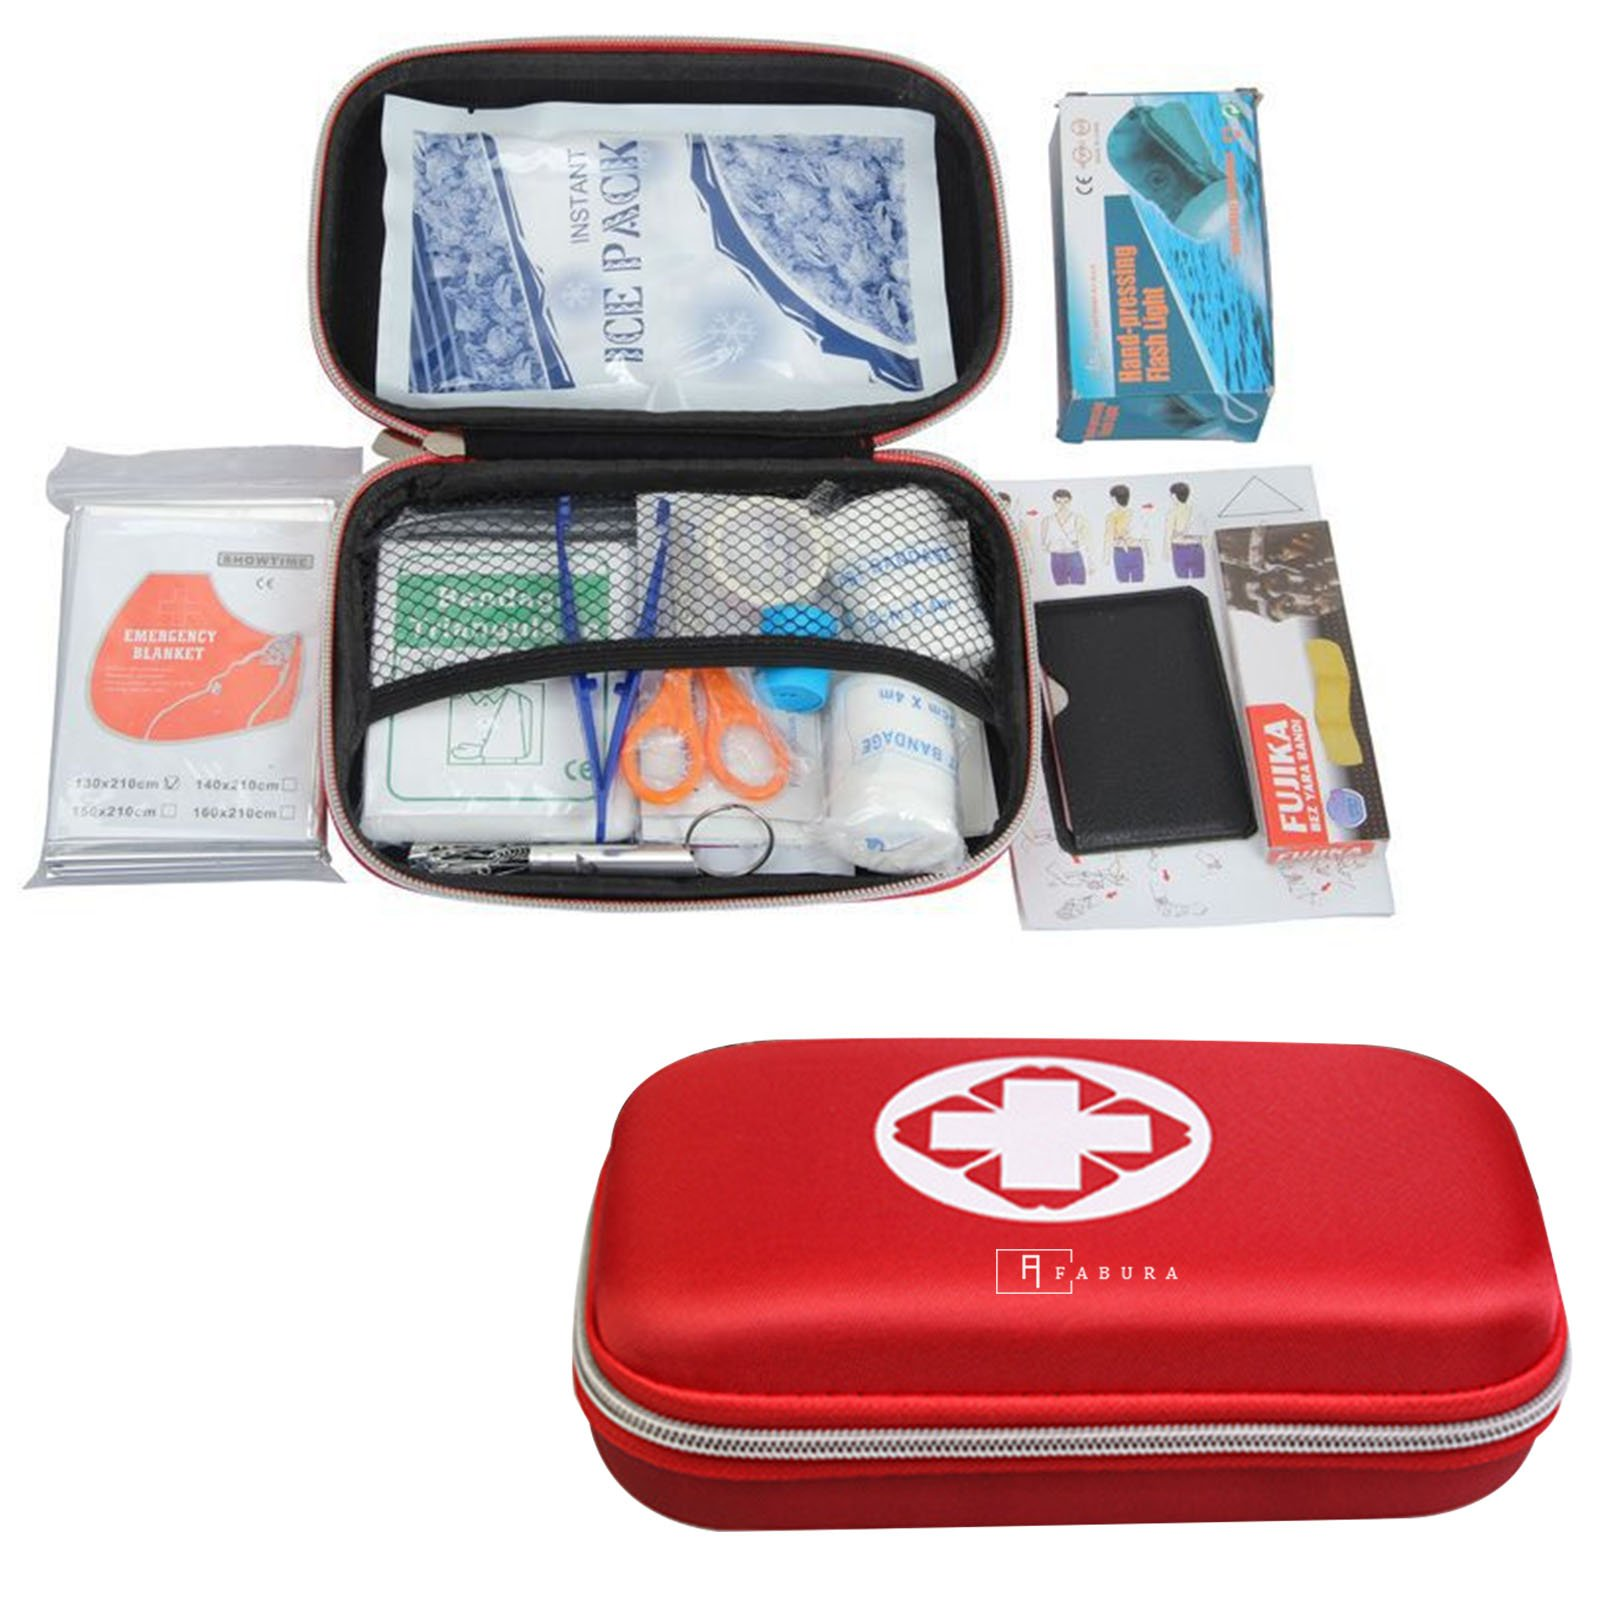 Fabura Outdoor Emergency Sports Travel Camping First Aid Survival Gear Kit With Waterproof Bag, 18-Piece One Pack, Model 1